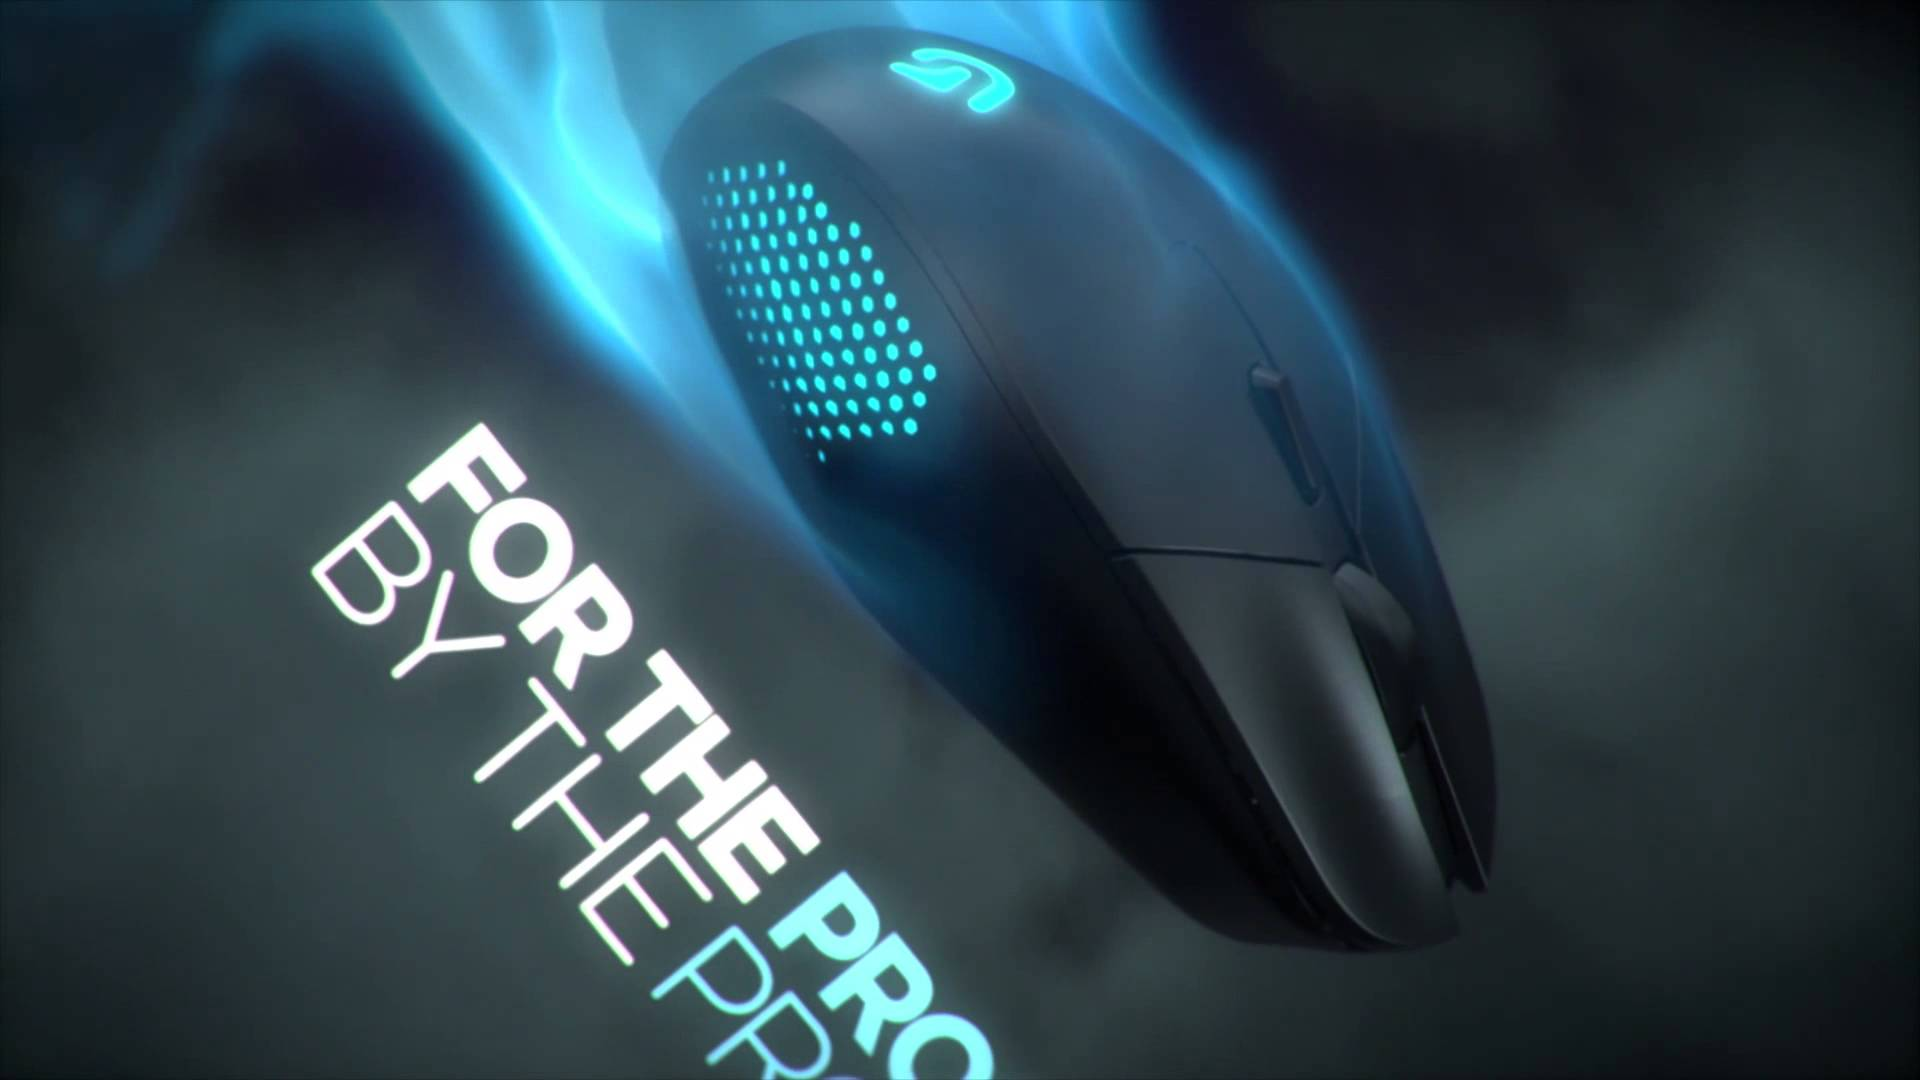 Download Logitech Gaming Wallpaper Gallery